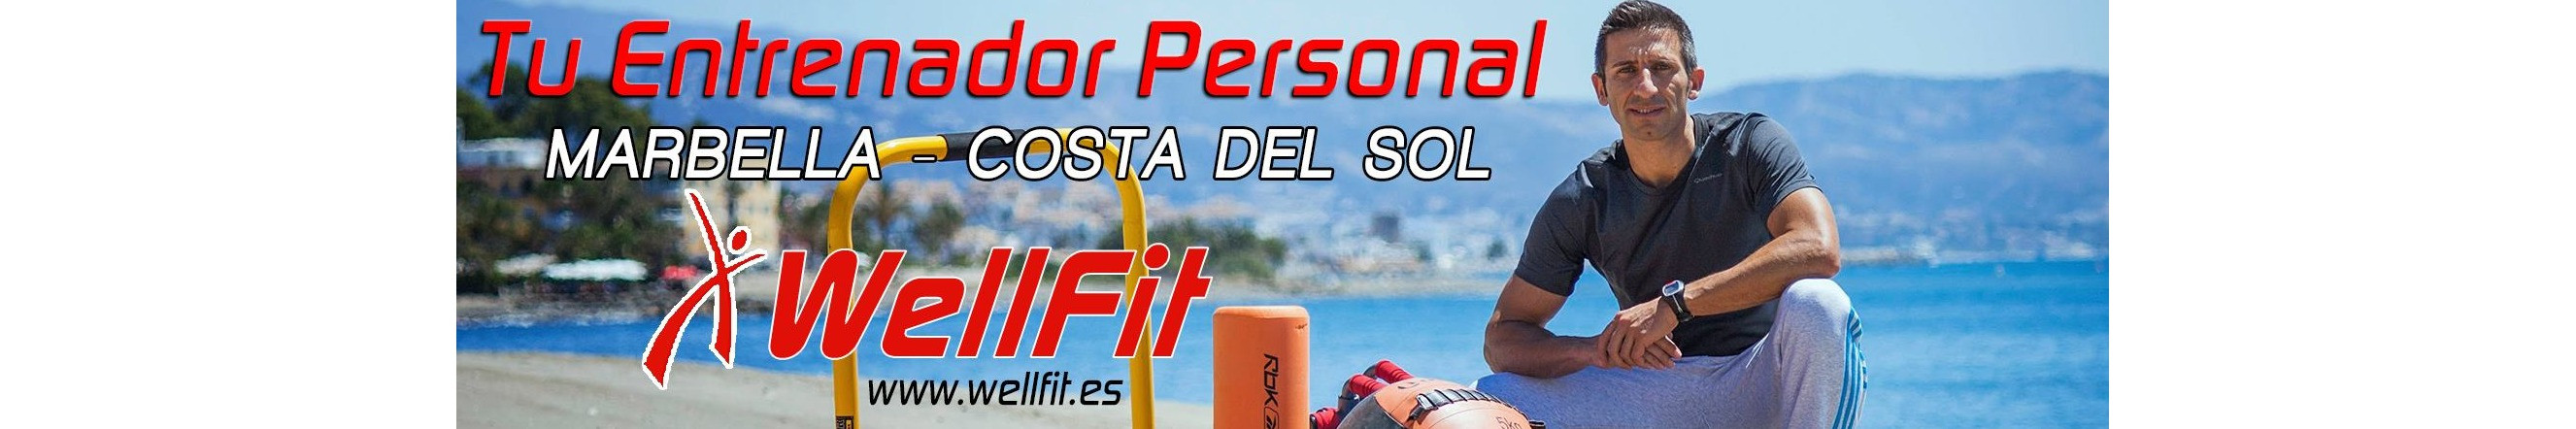 WELLFIT - Personal Trainer